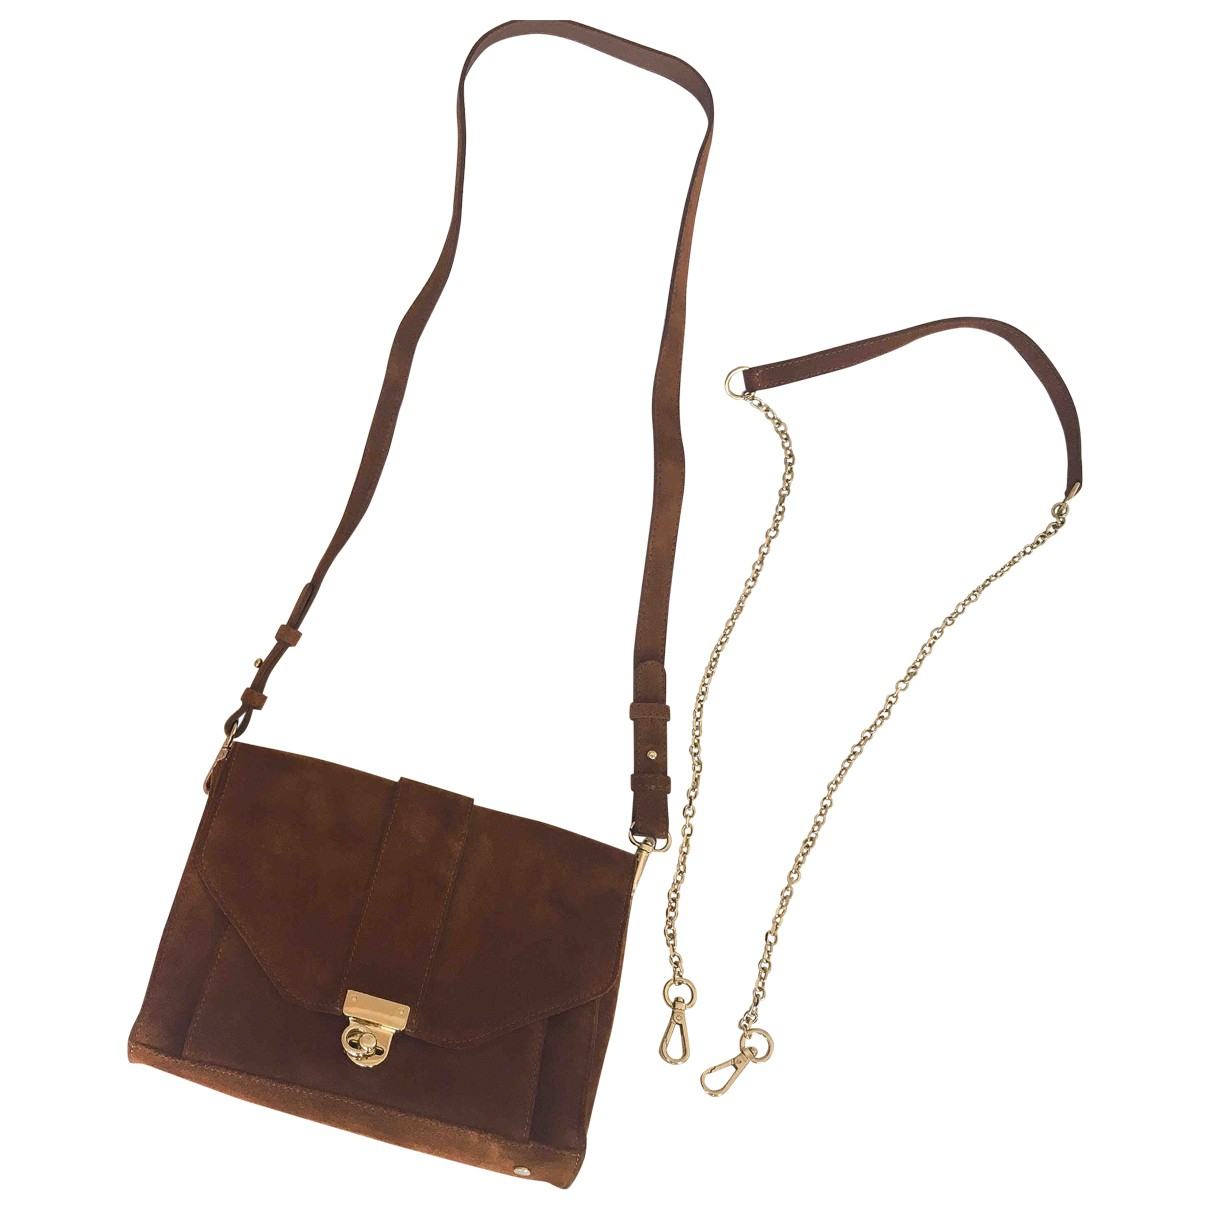 Sézane \N Brown Leather handbag for Women \N